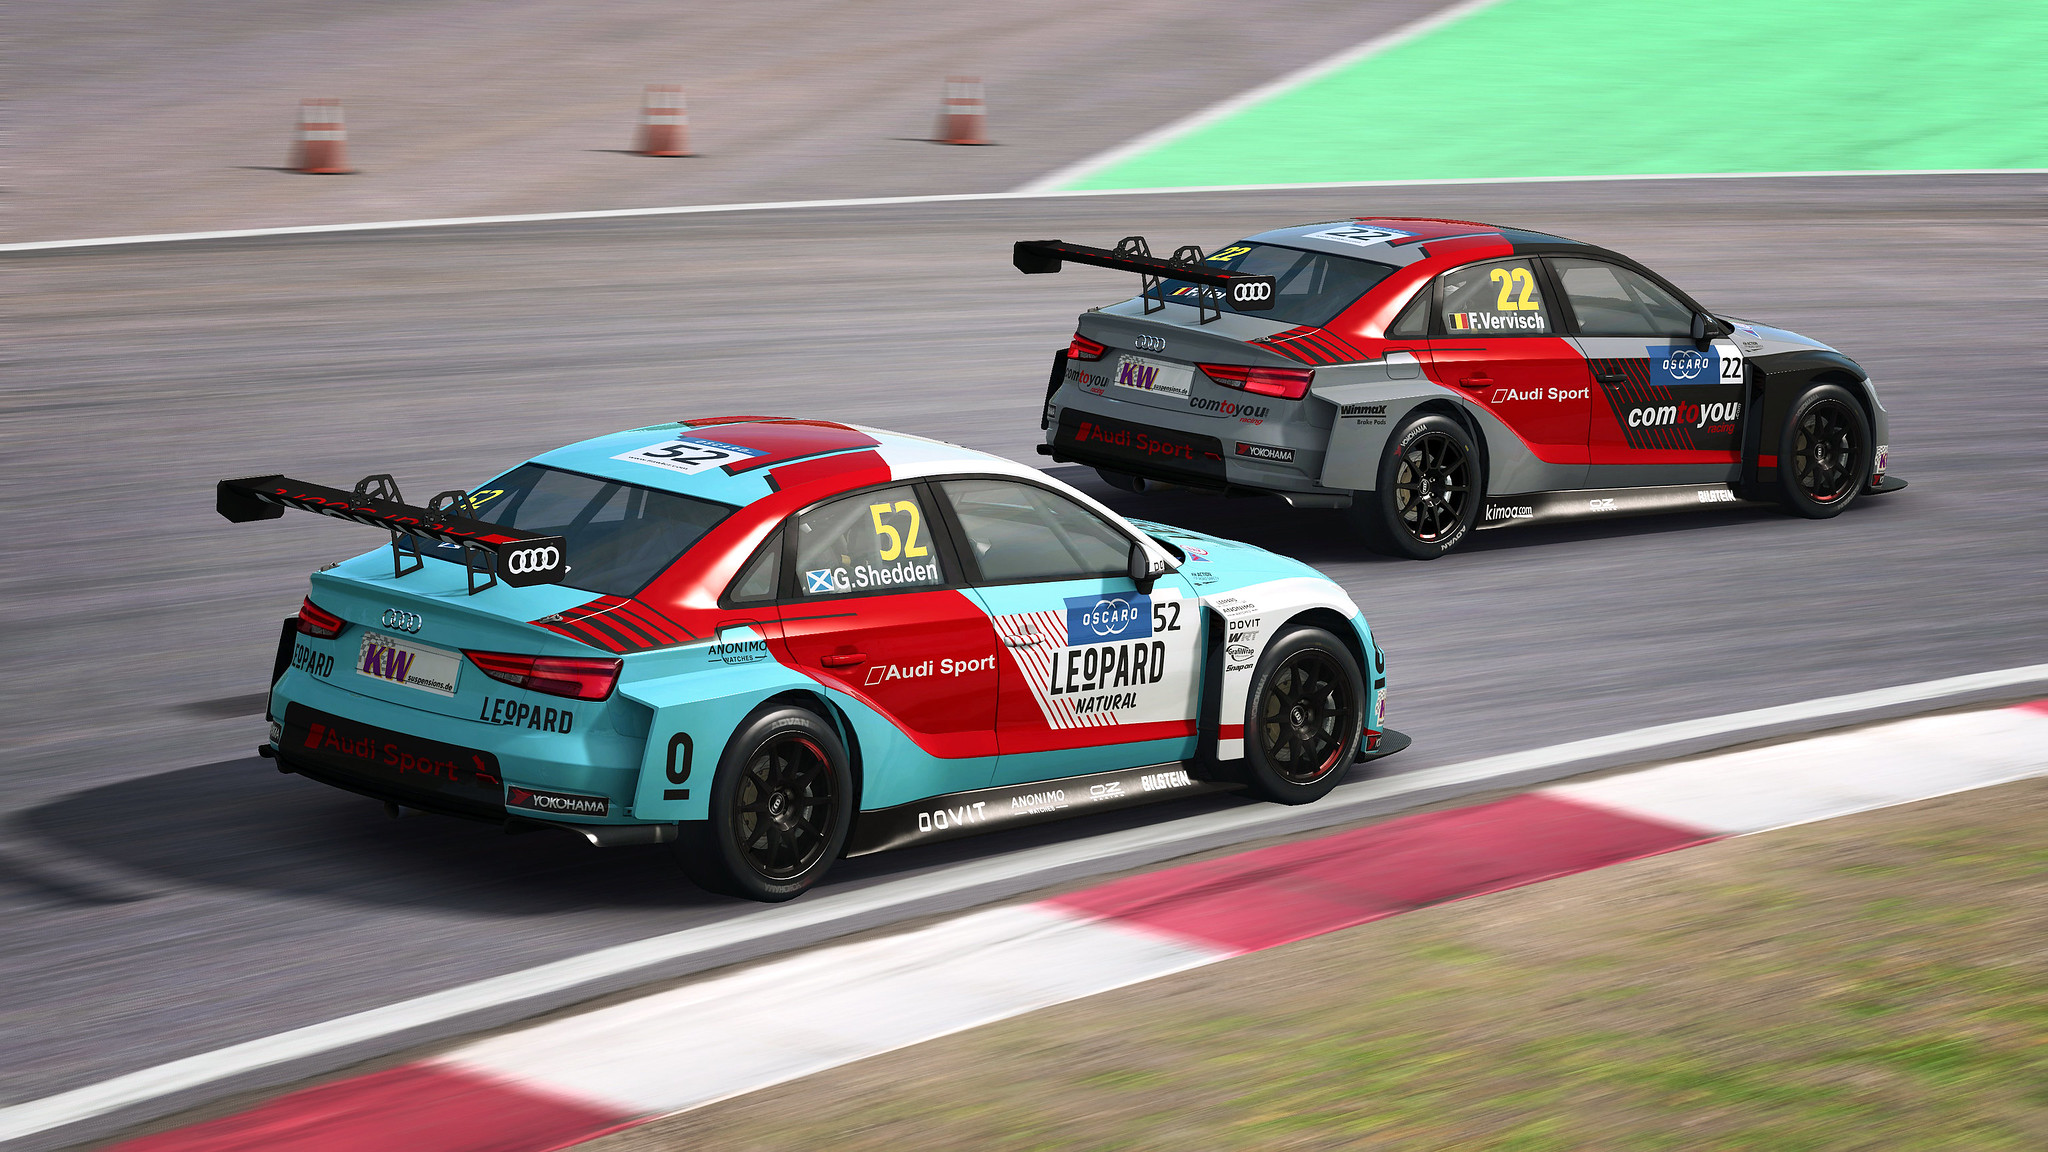 Preview: Keithley leads home hero Banki into Slovakia Ring Esports WTCR OSCARO round